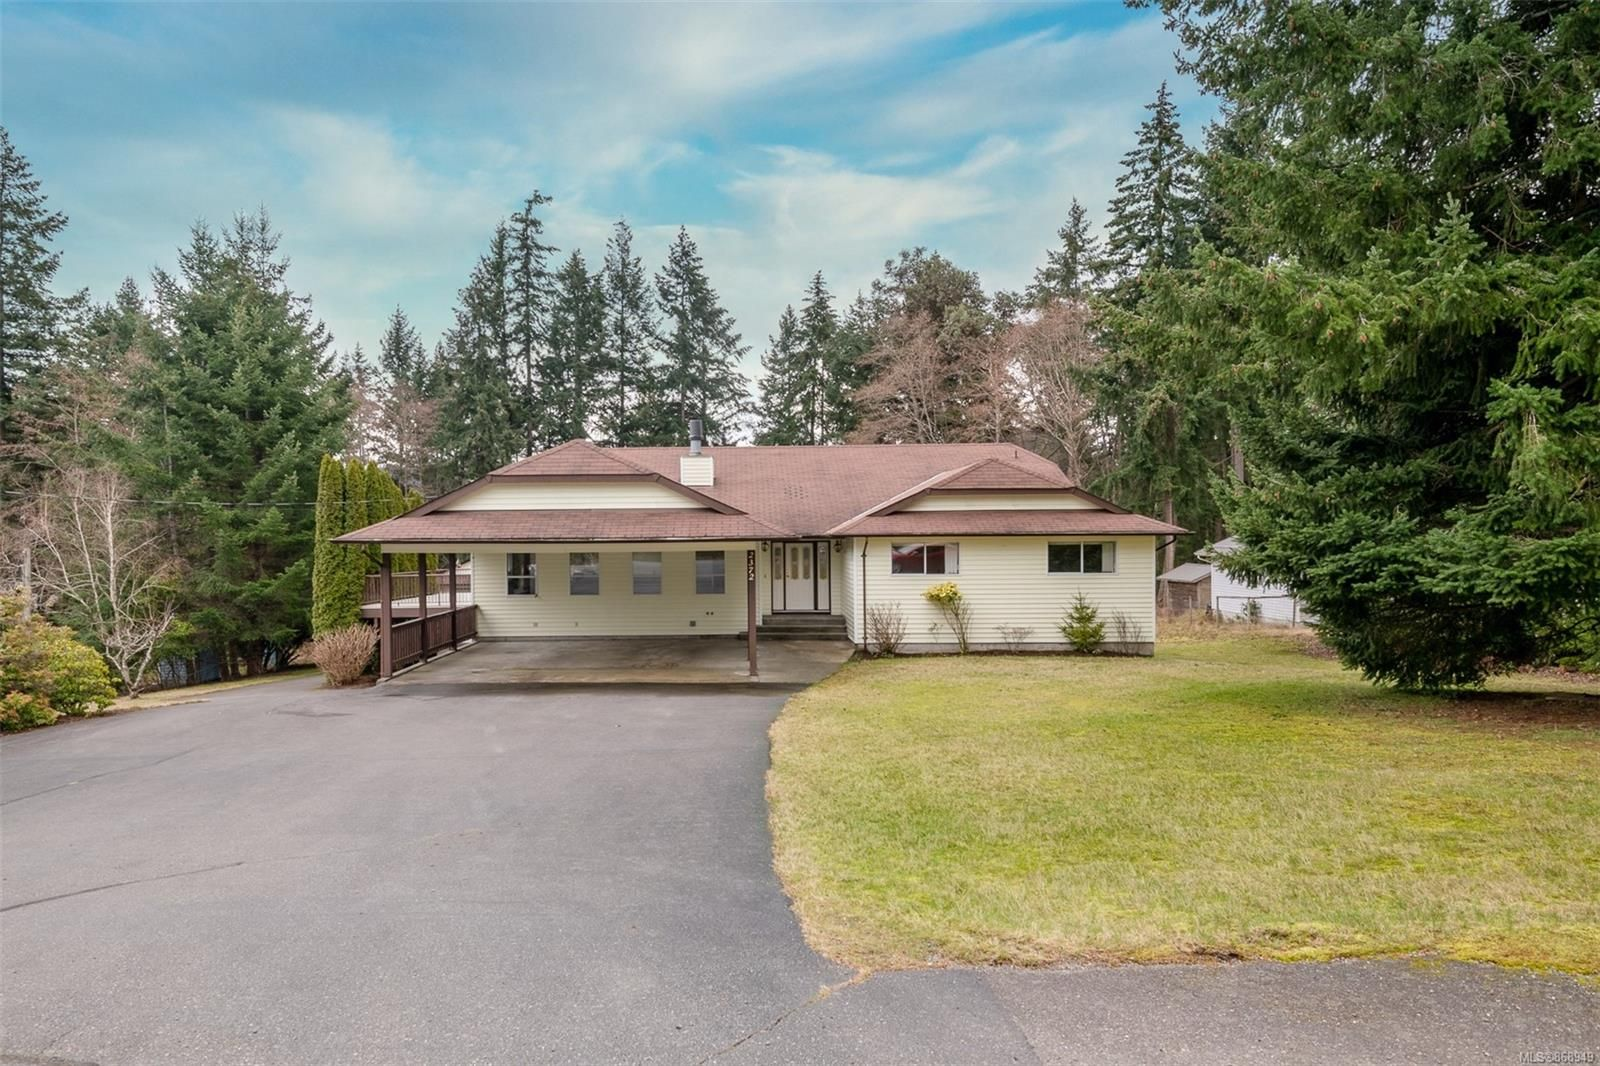 Main Photo: 2372 Nanoose Rd in : PQ Nanoose House for sale (Parksville/Qualicum)  : MLS®# 868949